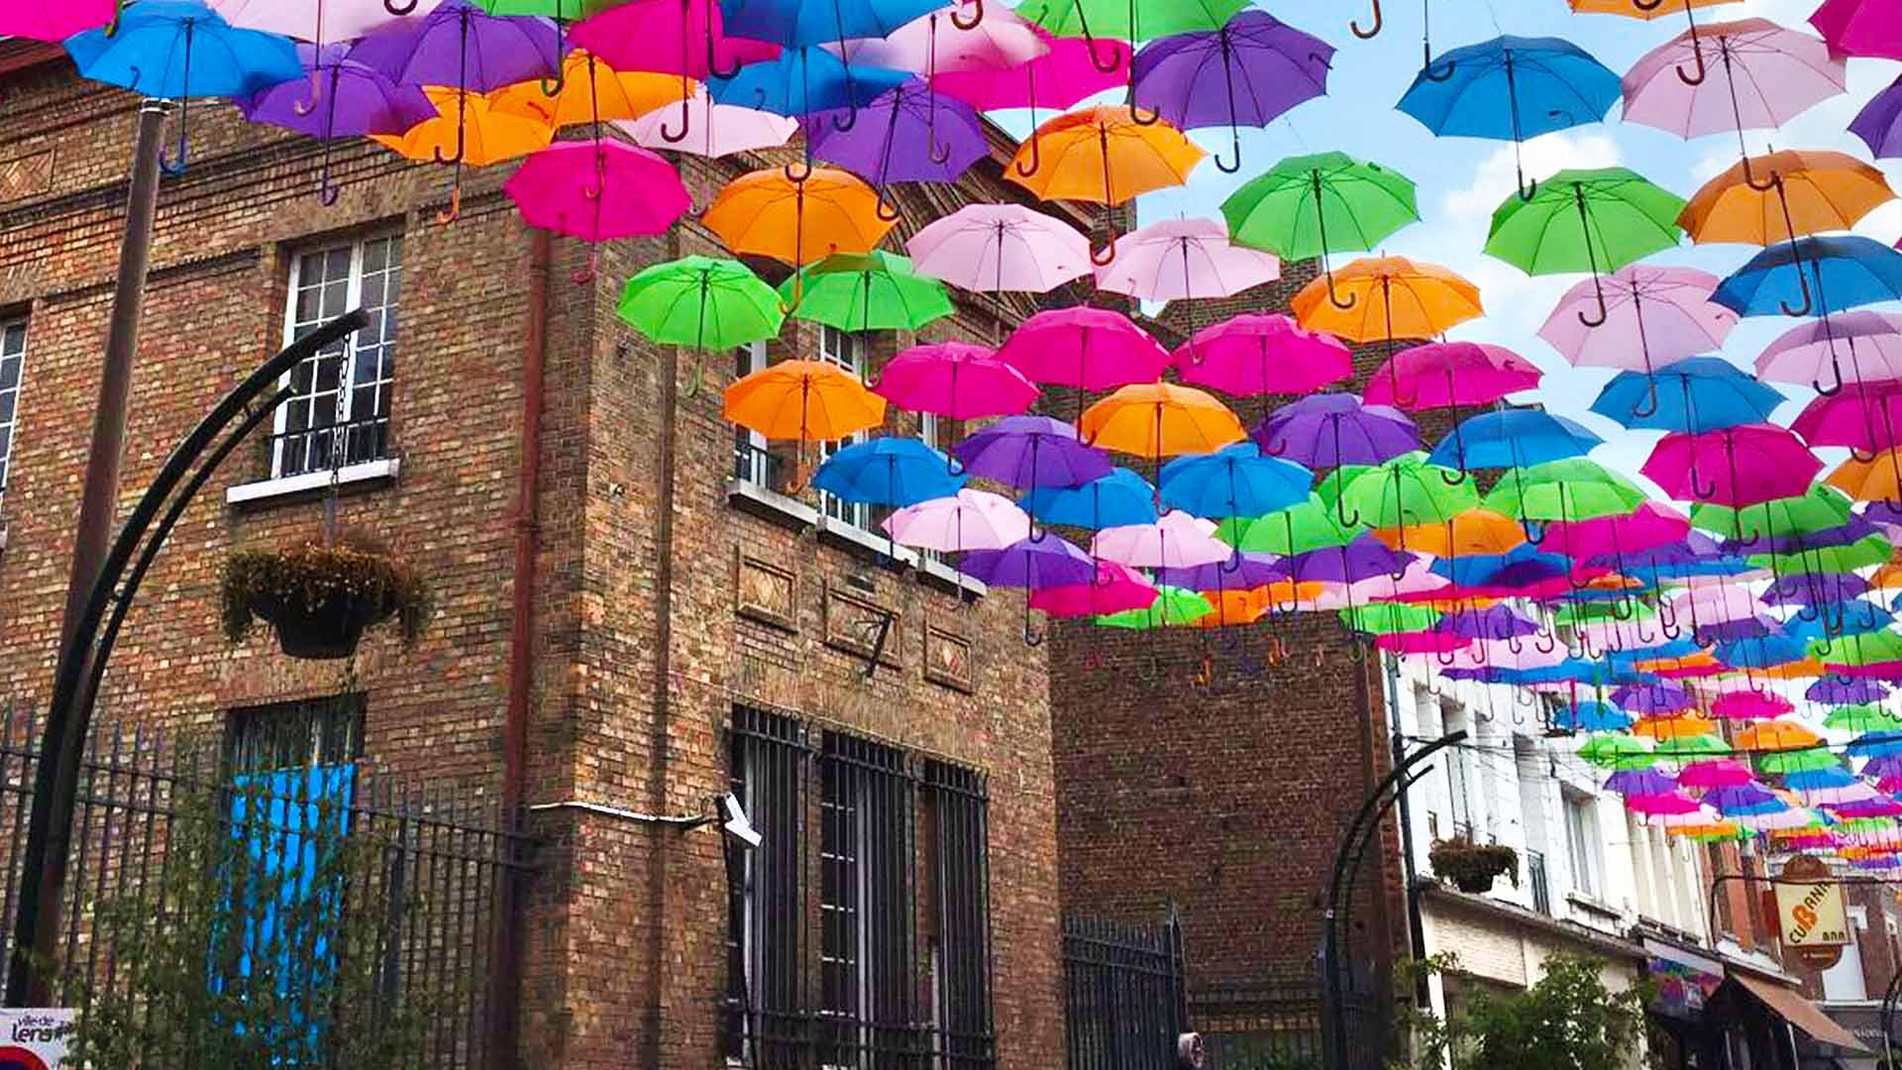 Umbrella Sky Project - Lens'17